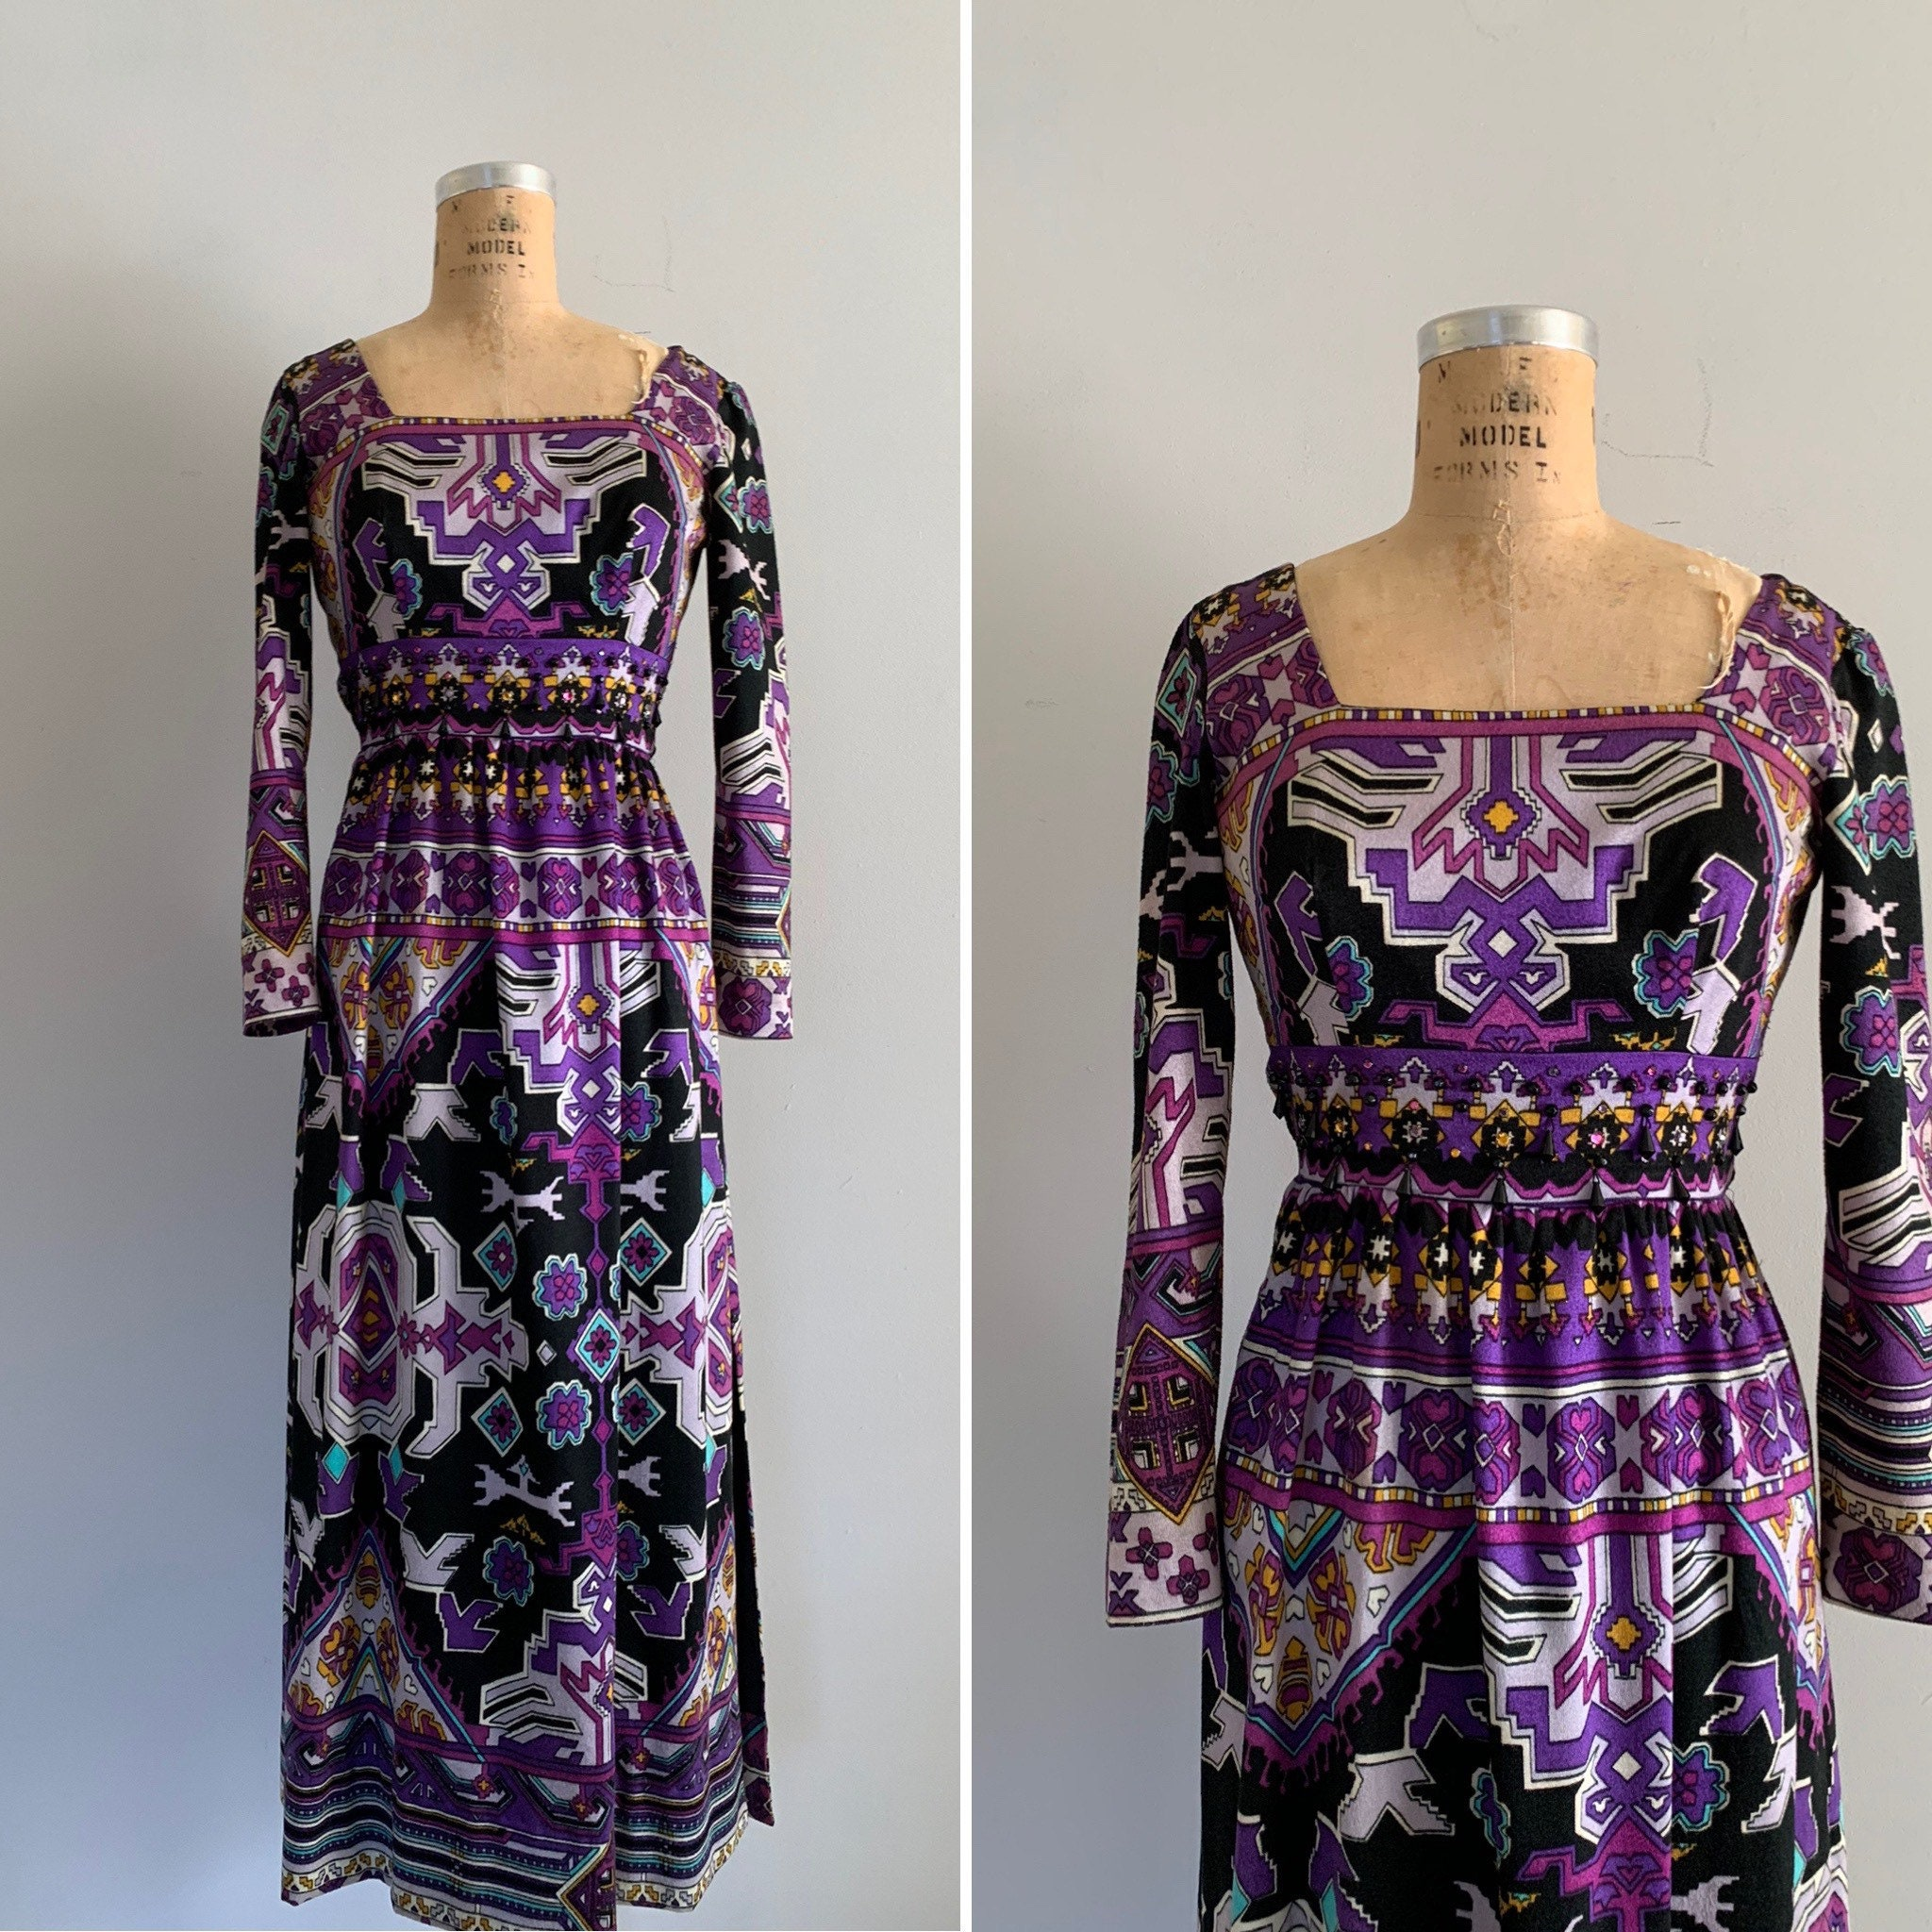 60s -70s Jewelry – Necklaces, Earrings, Rings, Bracelets 1960S Psychedelic Maxi With Zippered Side Slits60S Designer Psychedelic Purple  Black Mod Print Soft Lined Maxi Dress $108.00 AT vintagedancer.com